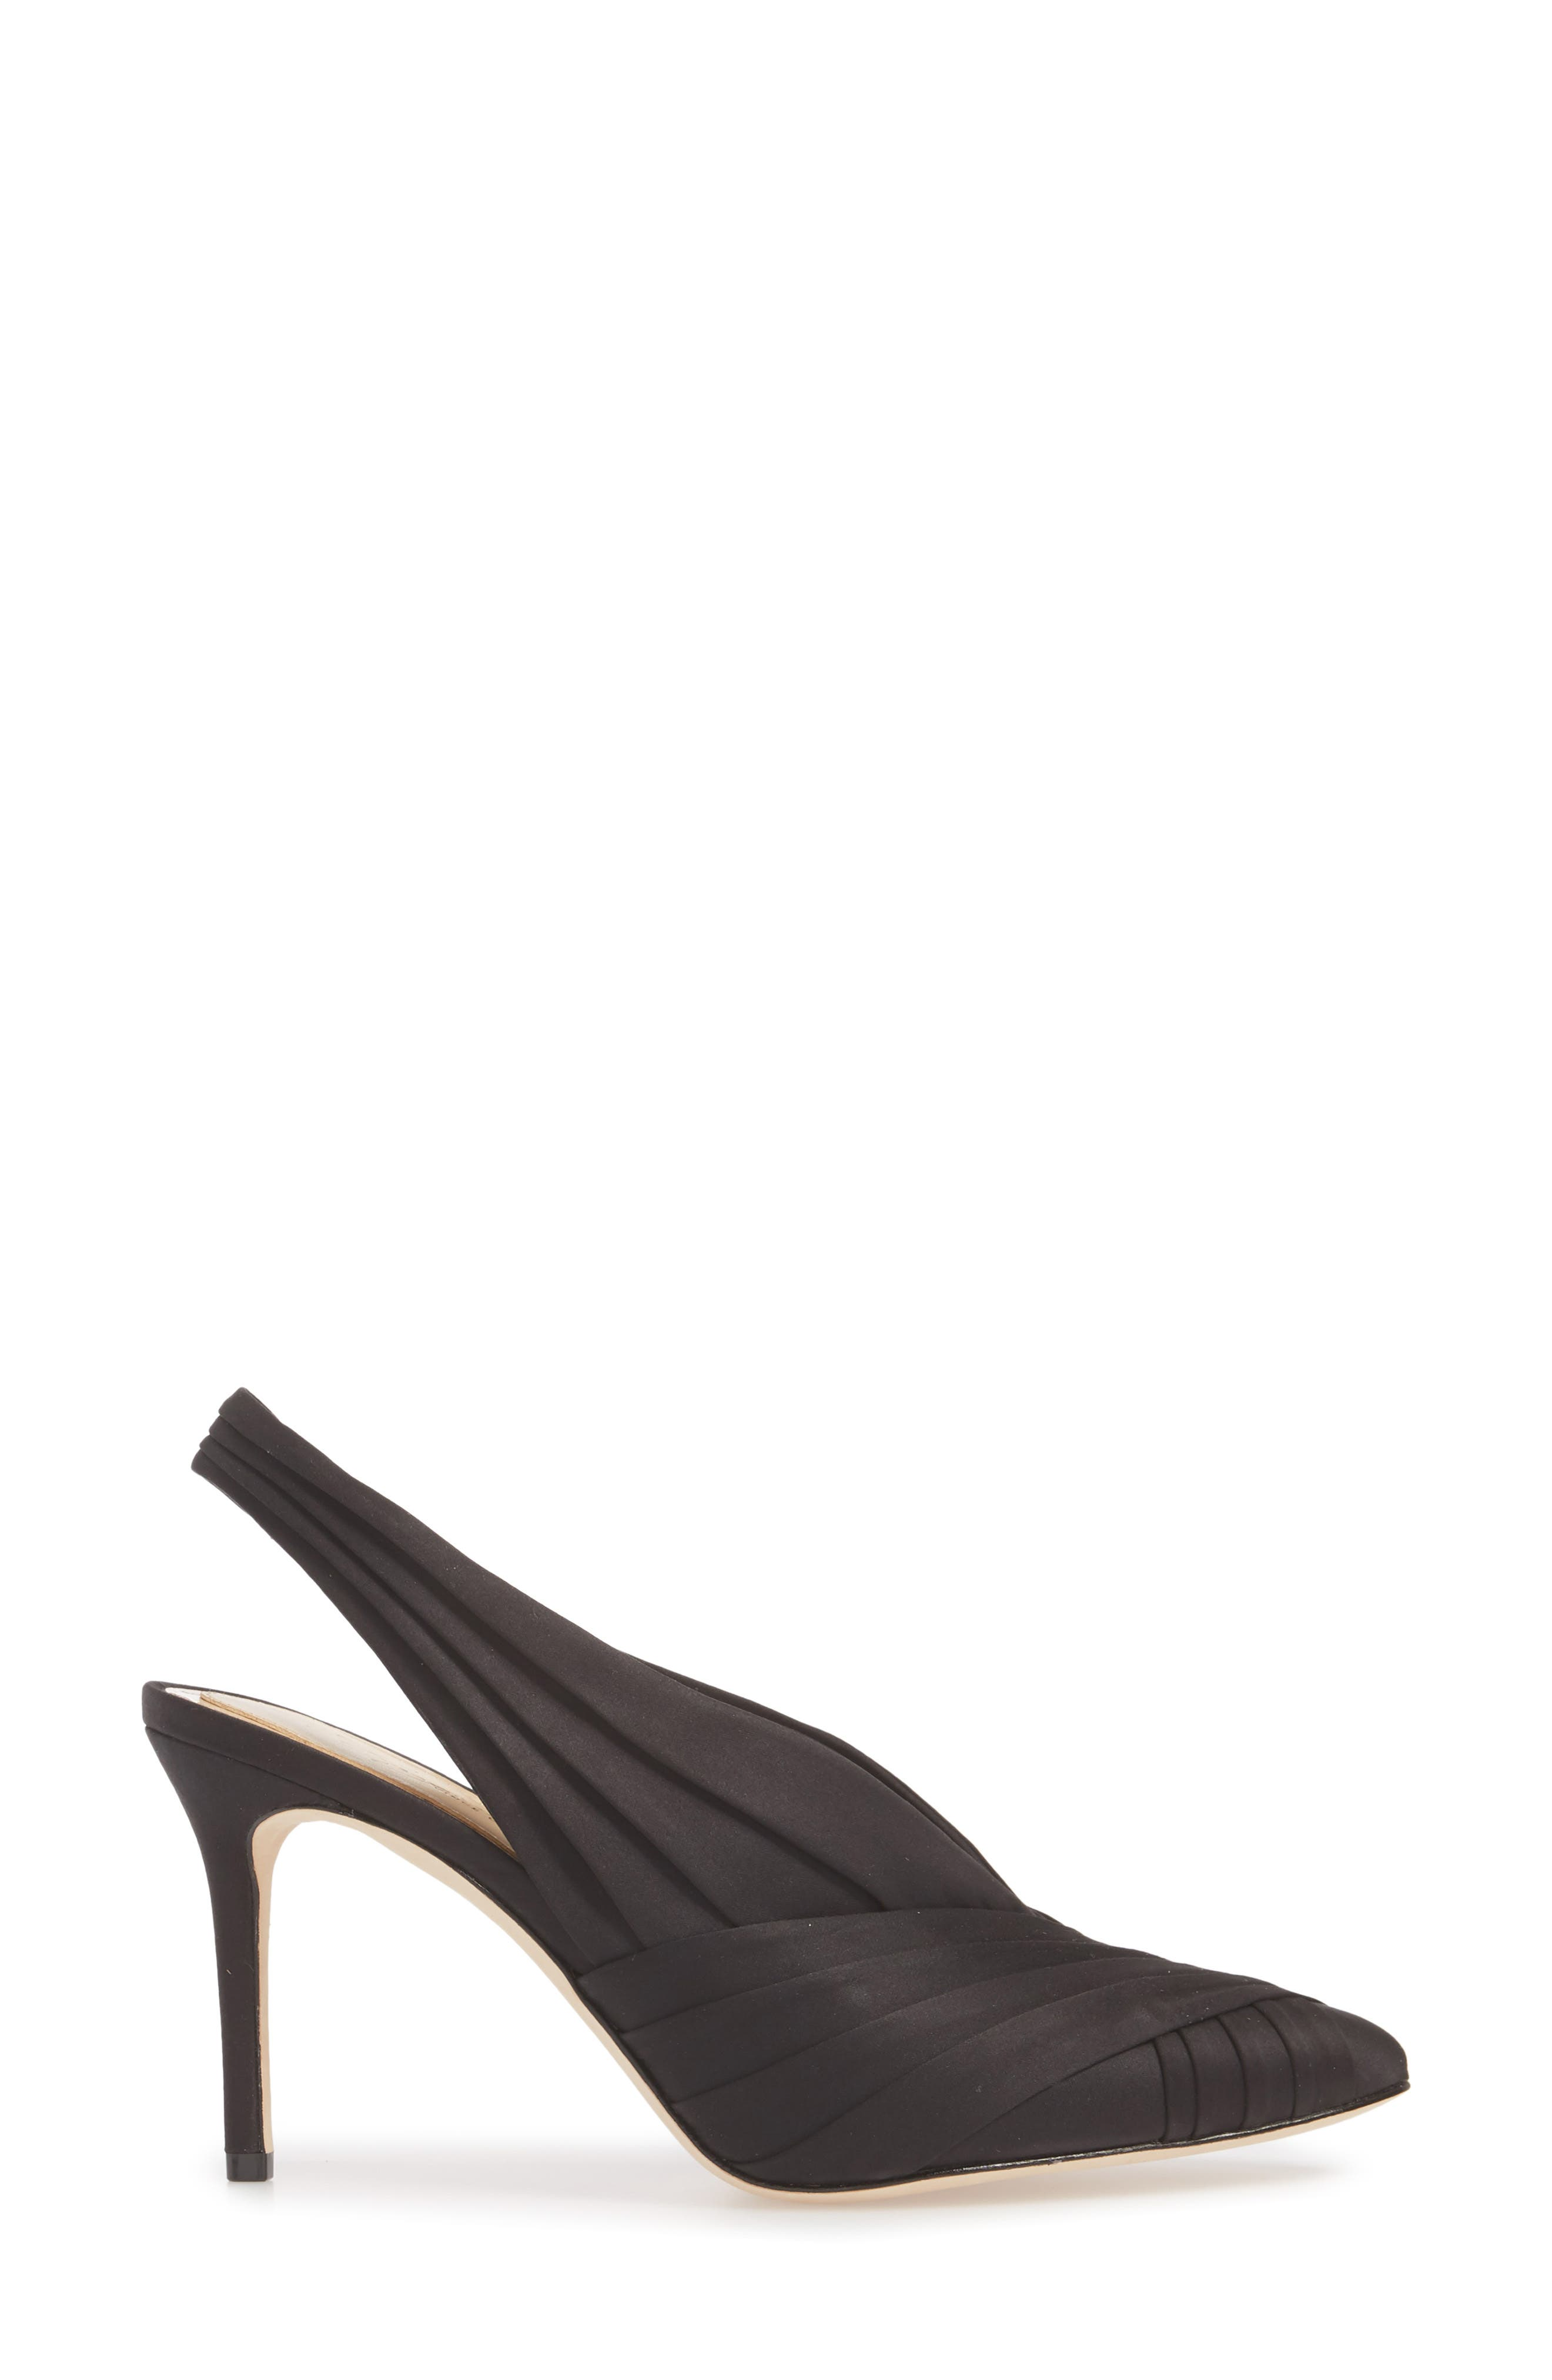 Melkia Pump,                             Alternate thumbnail 3, color,                             BLACK SATIN